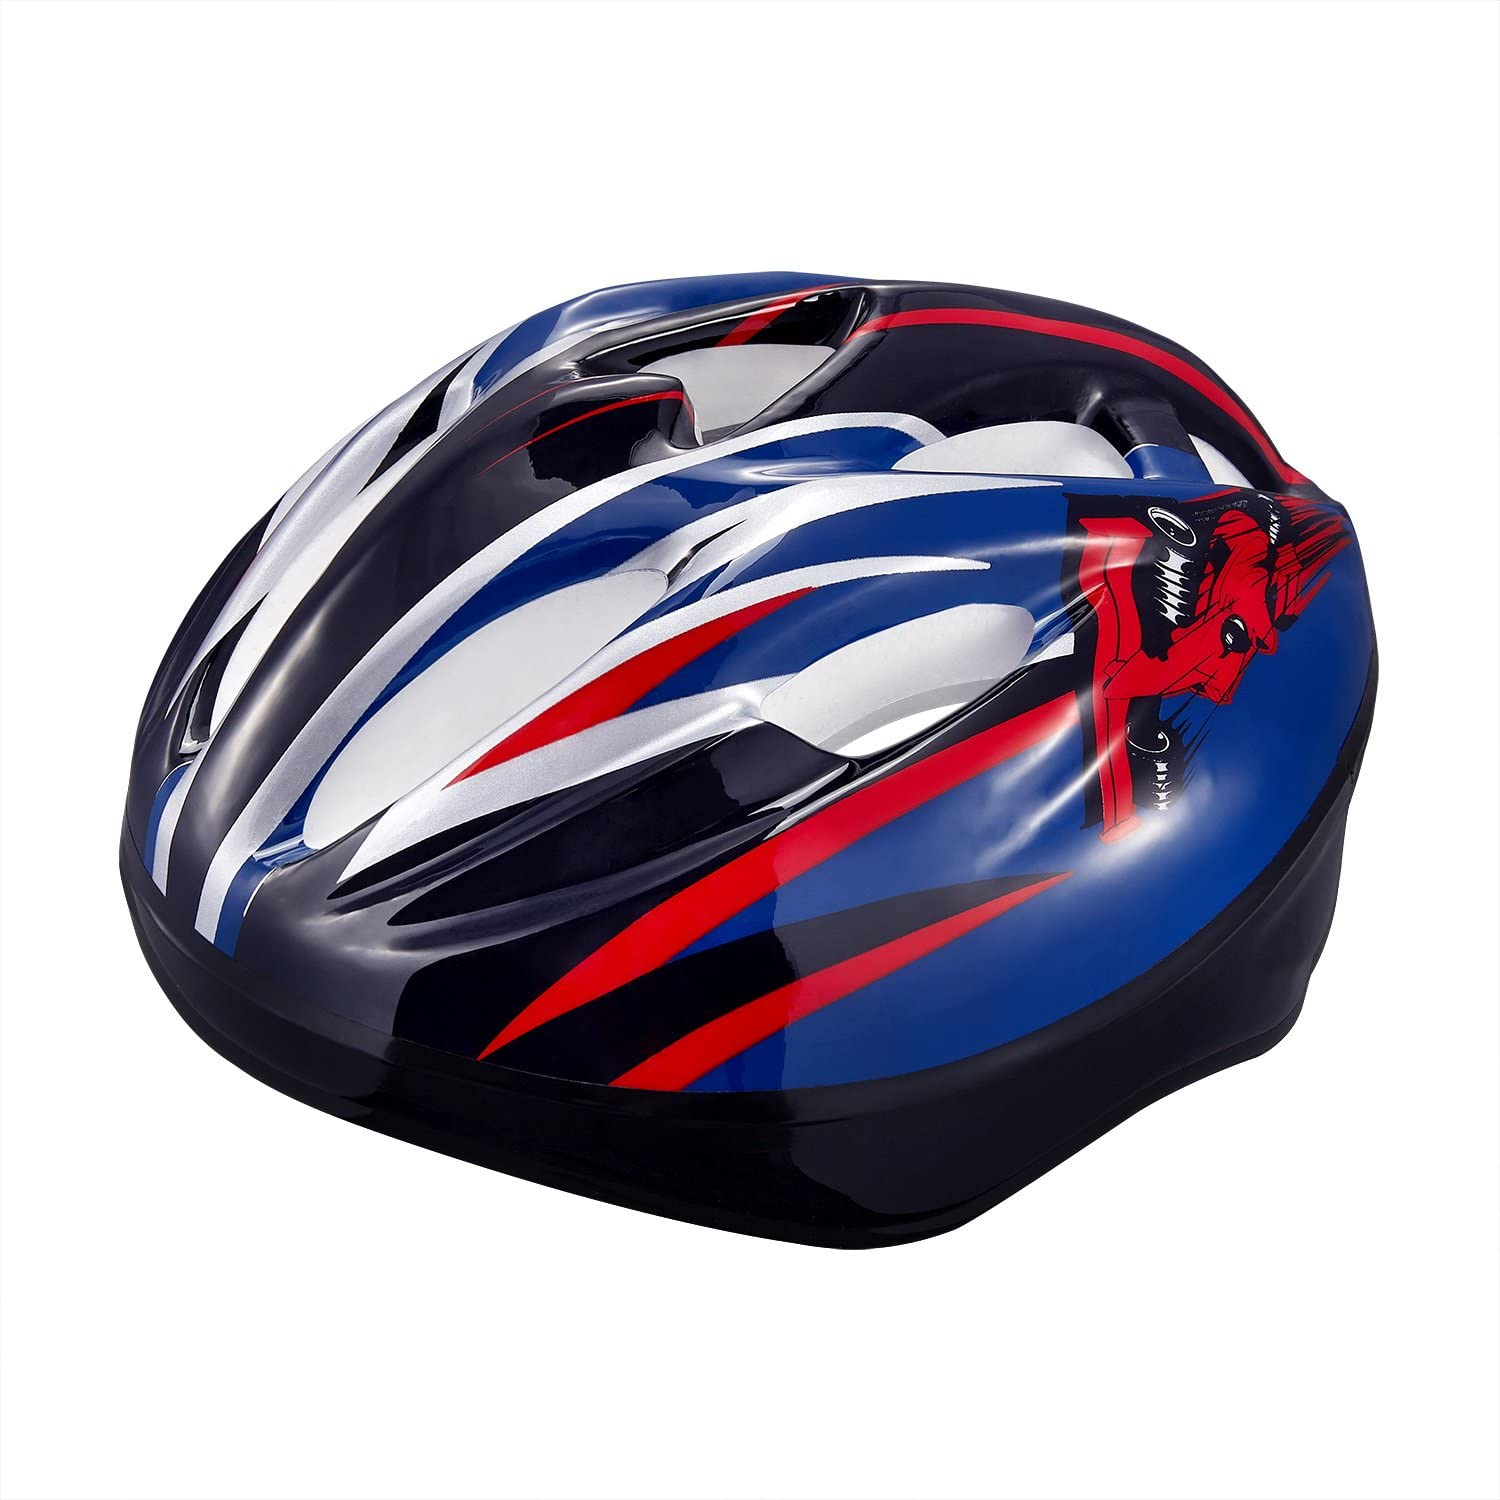 KUYOU Multi-Sport Helmet for Kids Cycling/Skateboard/Bike/BMX/Dry Slope Protective Gear Suitable 1-6 Years Old.